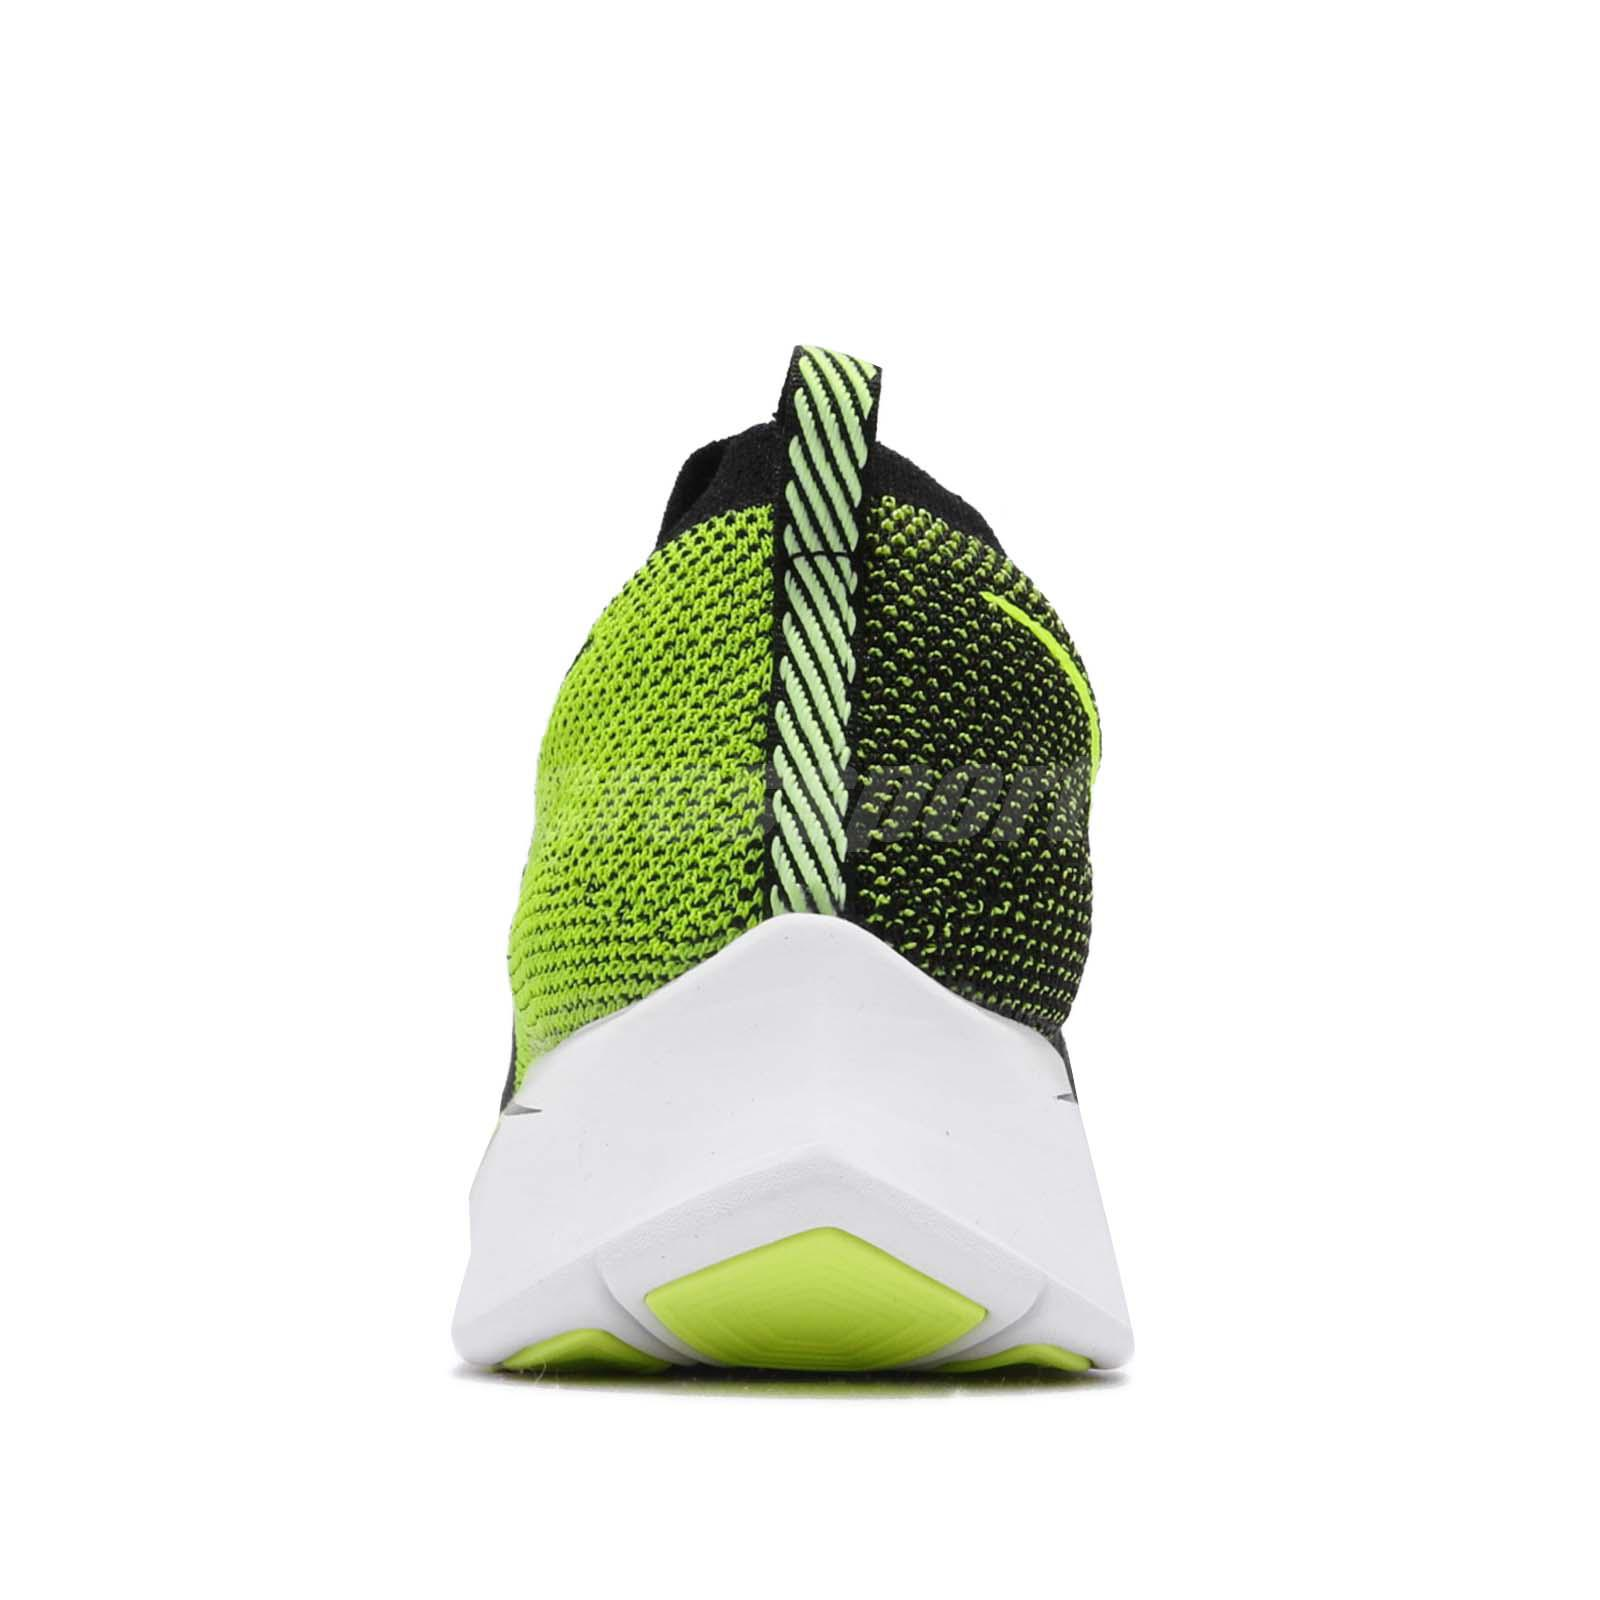 ef11c25f8a7 Nike Zoom Fly Flyknit Black Volt White Men Running Shoes Sneakers ...